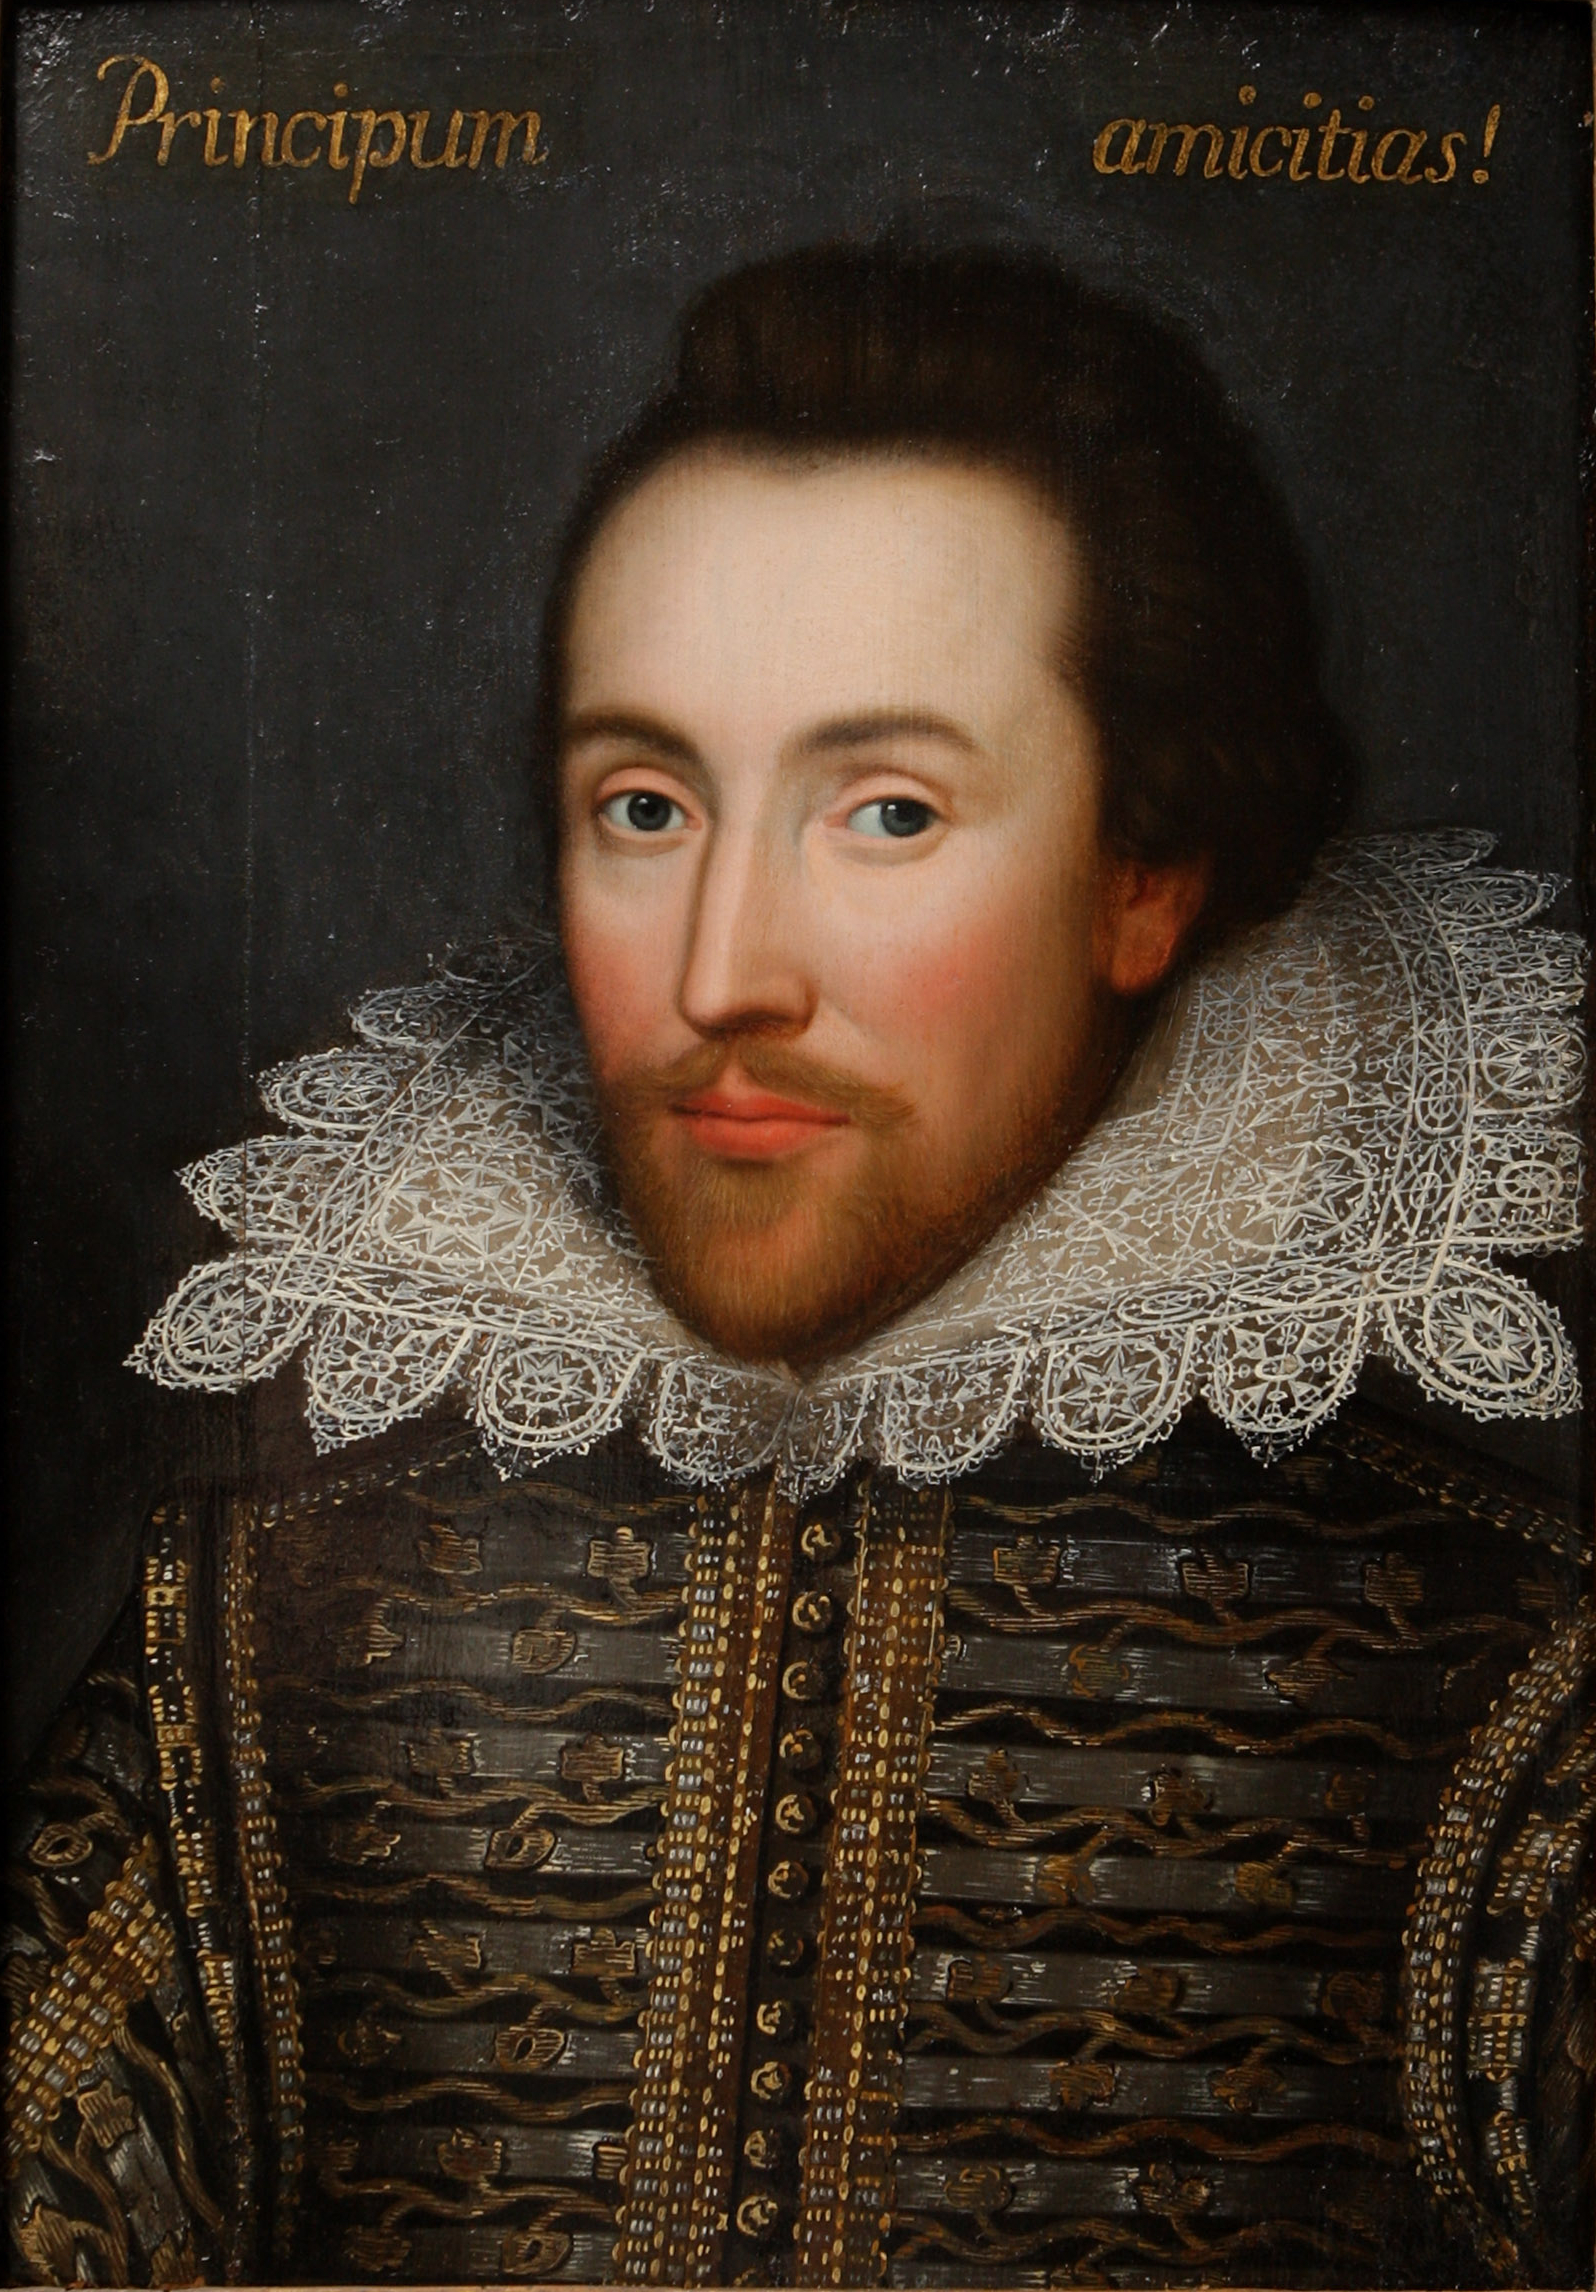 File:Cobbe portrait of Shakespeare.jpg - Wikipedia, the free ...: en.wikipedia.org/wiki/file:cobbe_portrait_of_shakespeare.jpg